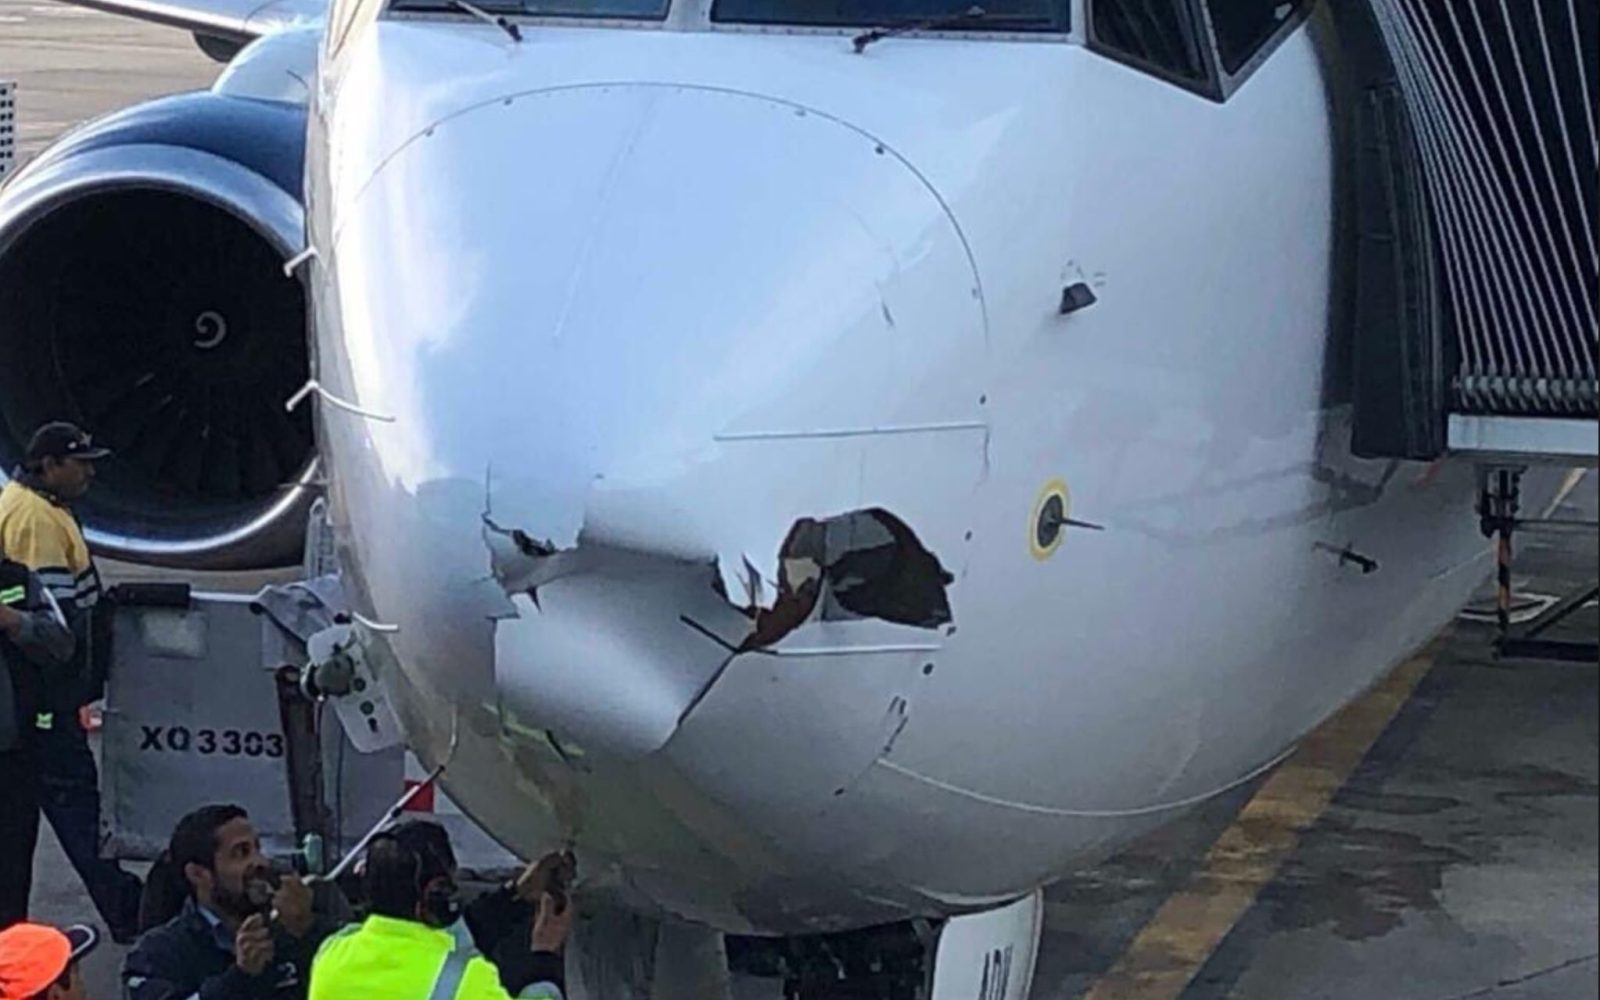 Boeing 737 hit by a drone